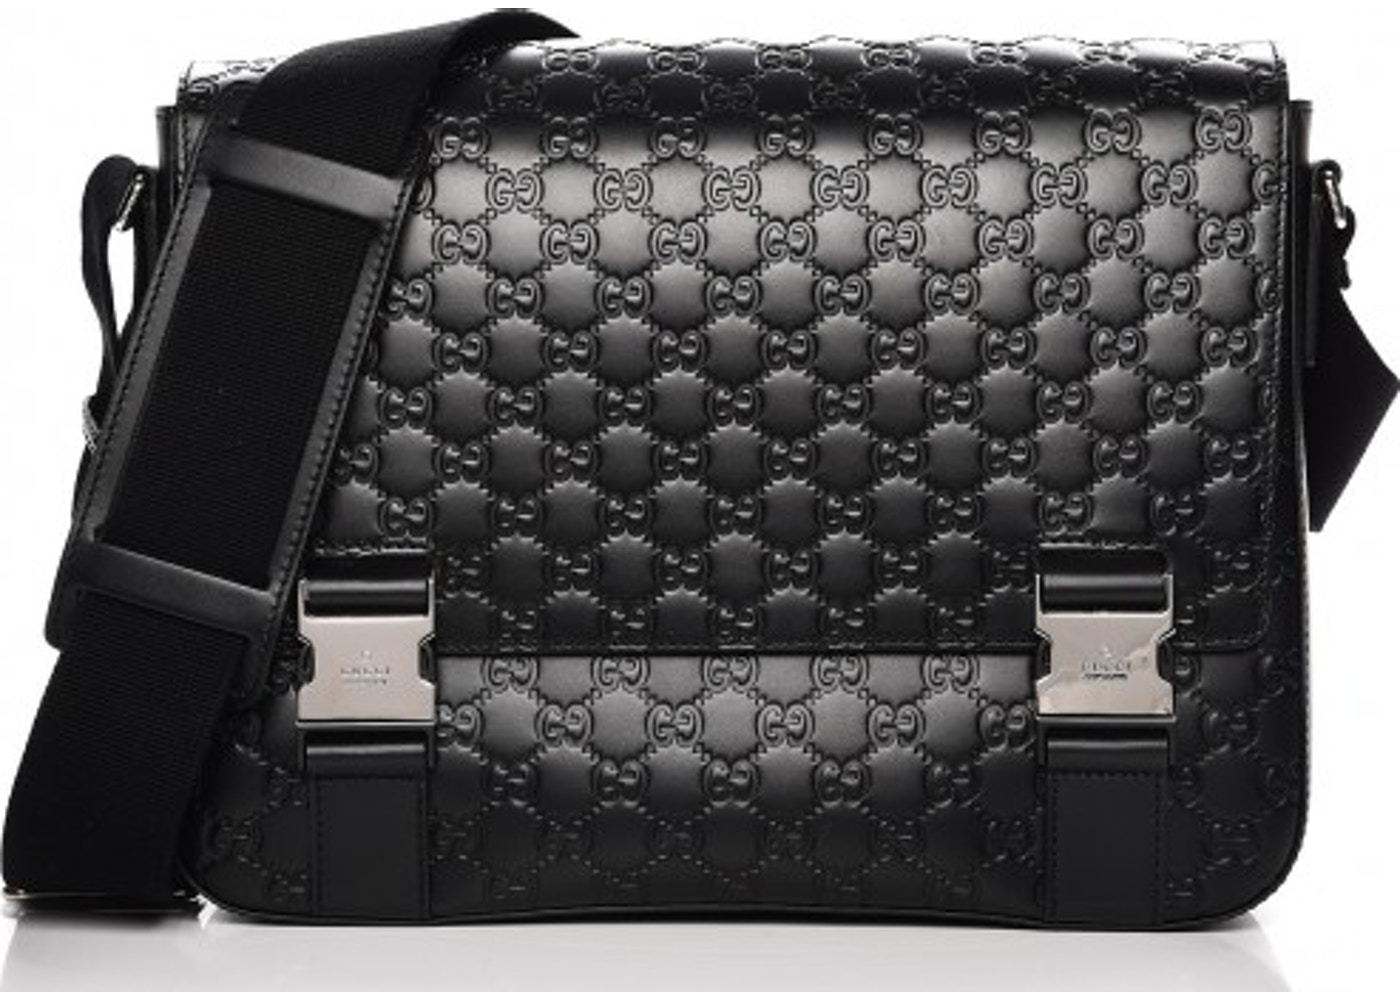 d3863de5e Gucci Signature Messenger Monogram Guccissima Medium Black. Monogram  Guccissima Medium Black